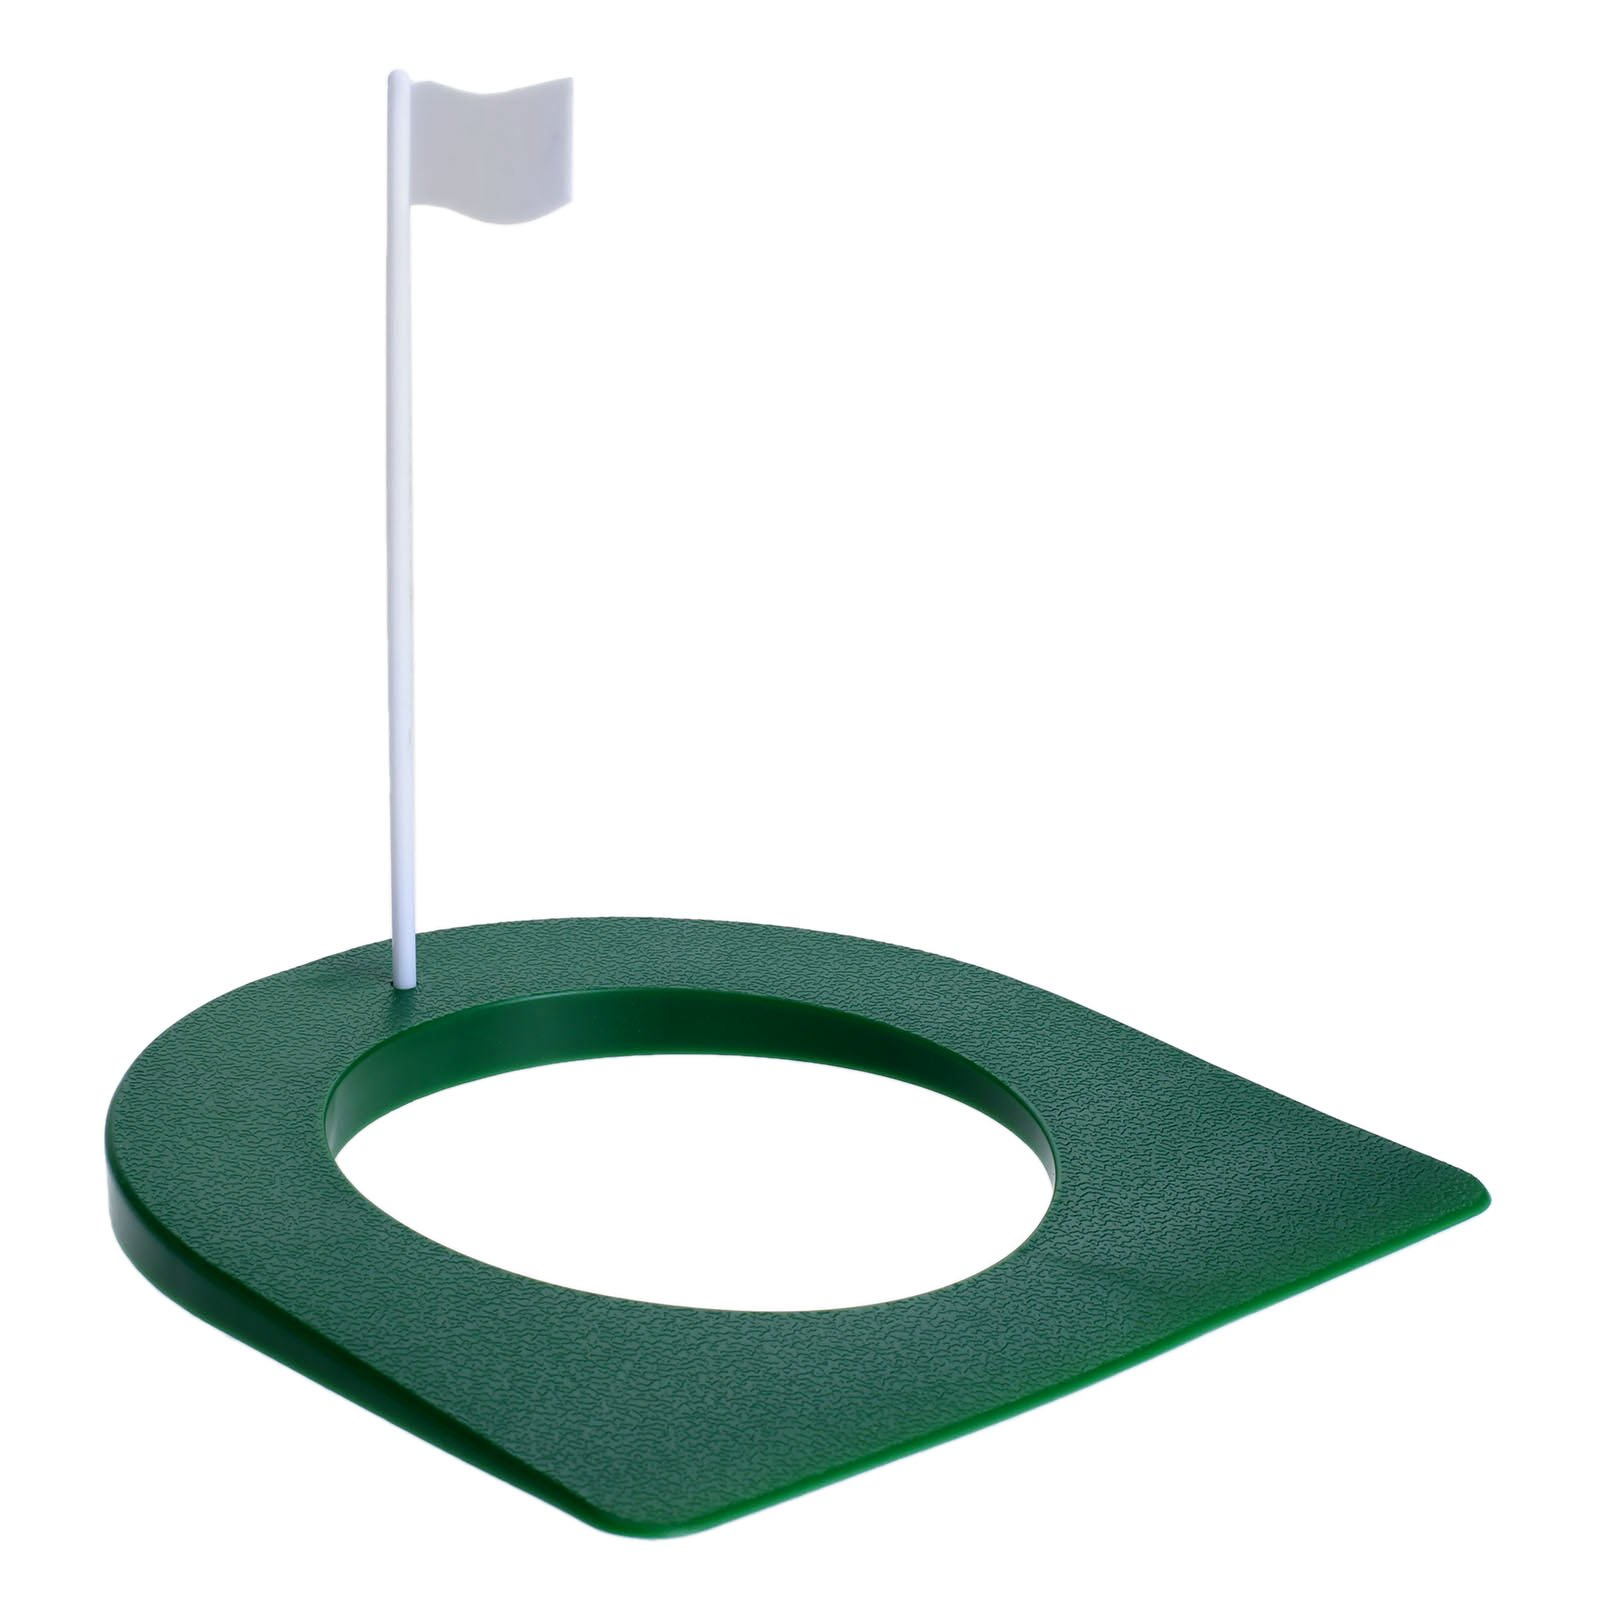 MUXSAM 10 Pcs Golf Putting Green Regulation Cup Hole Flag Indoor Practice Training Aids by MUXSAM